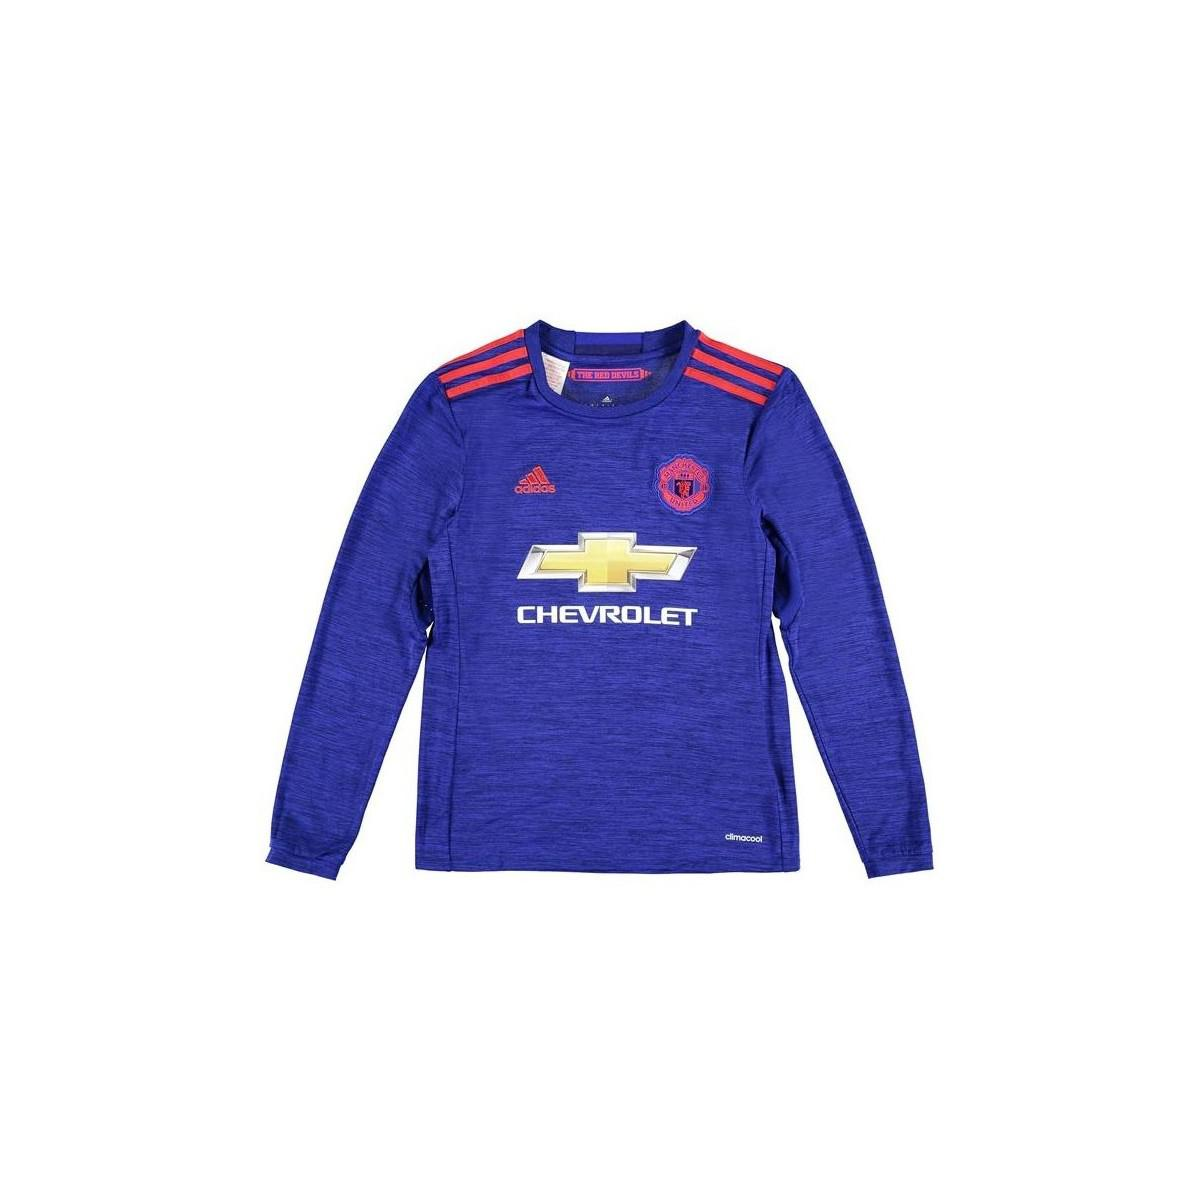 1366cccaf adidas 2016-17 Man United Away Long Sleeve Shirt (ibrahimovic 9 ...